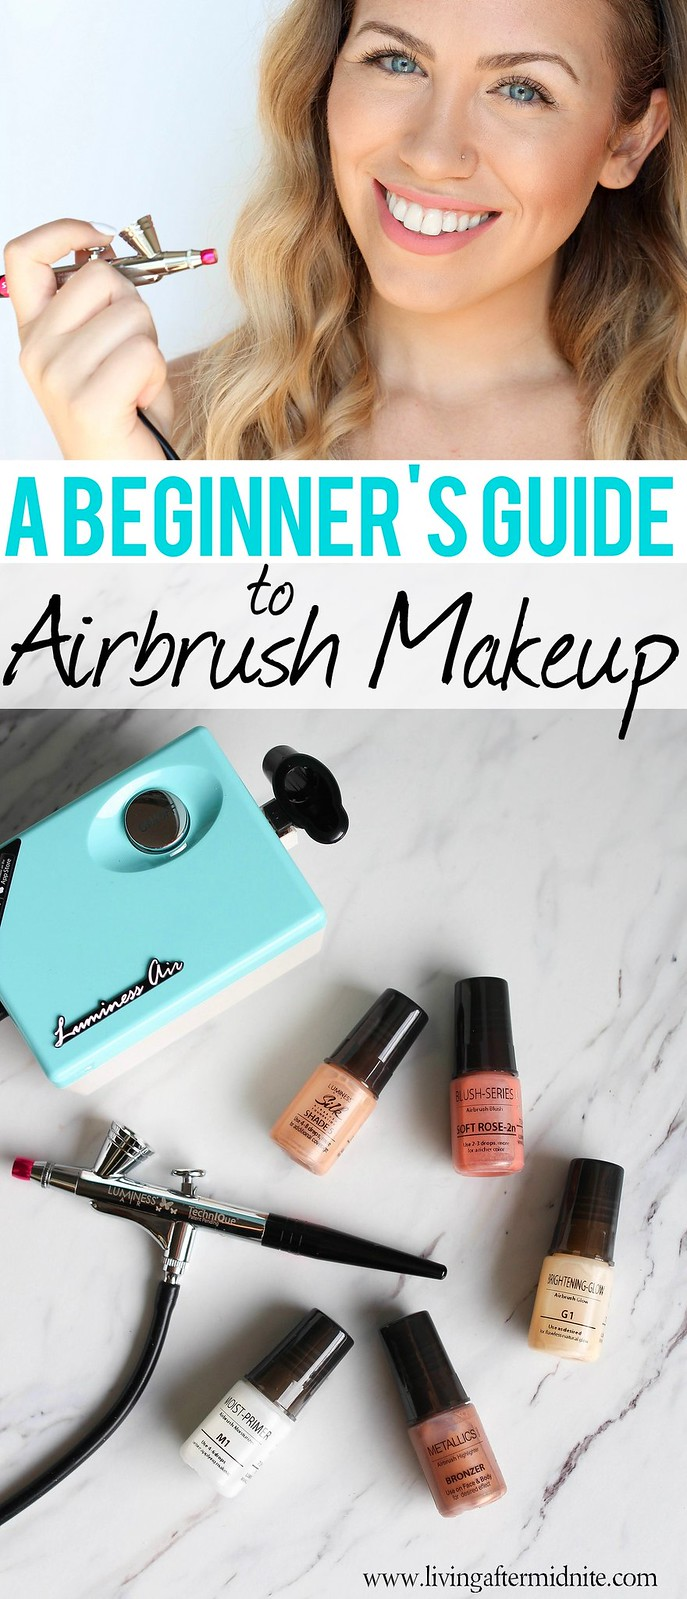 A Beginner's Guide to Airbrush Makeup with Luminess Air on Living After Midnite Jackie Giardina Beauty Blogger